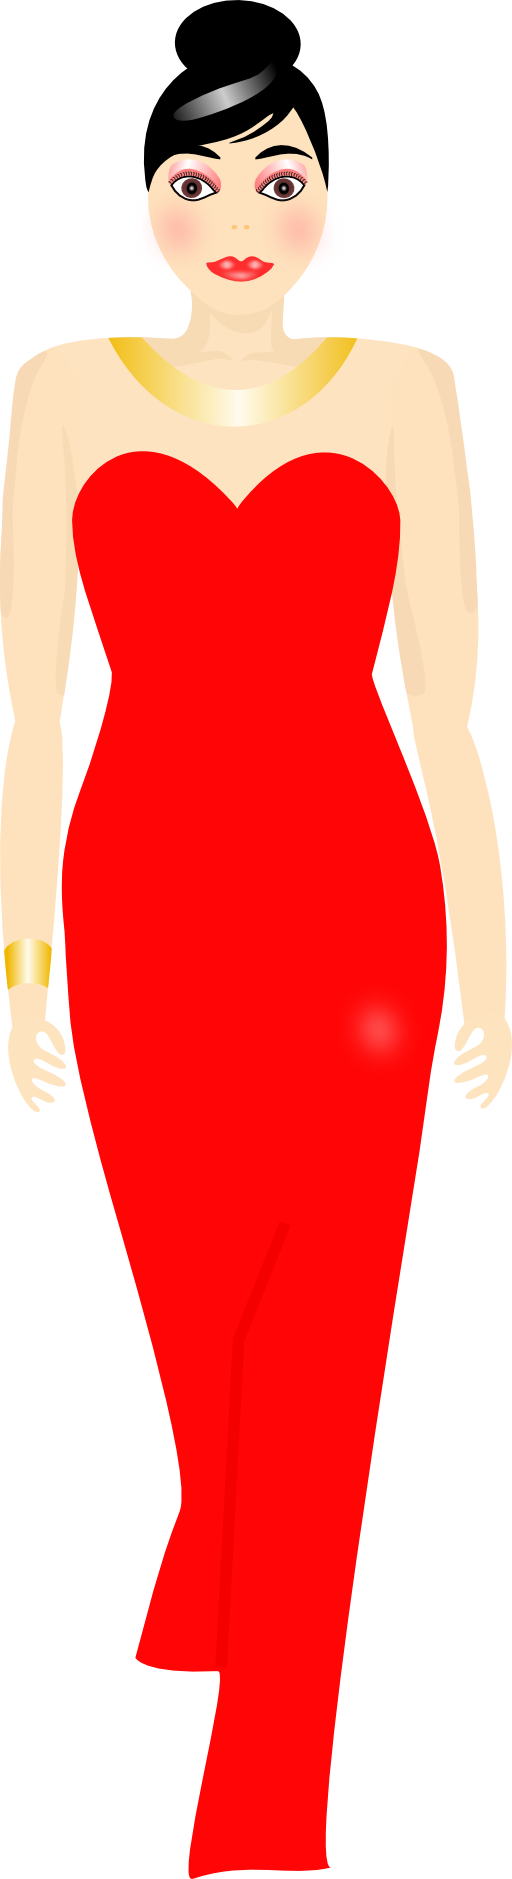 svg royalty free library Gown clipart red dress. Panda free images reddressclipart